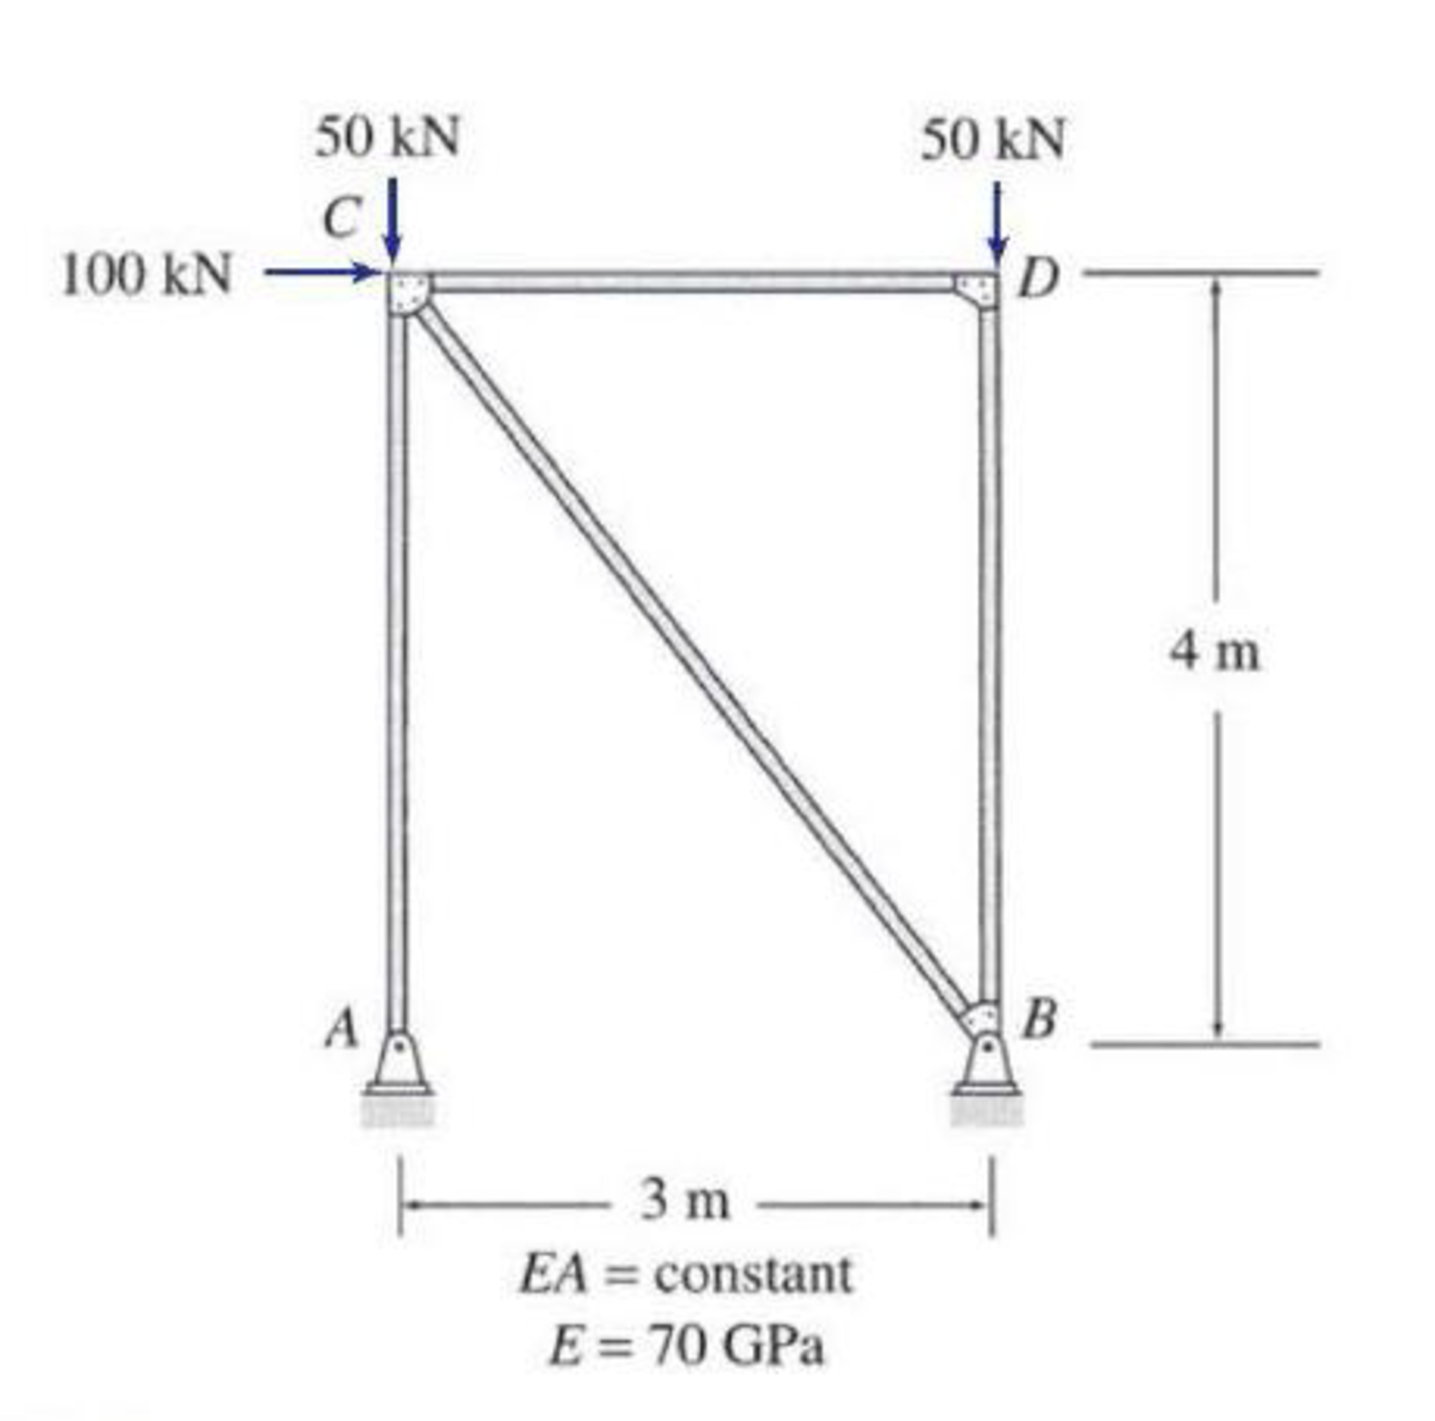 Chapter 7, Problem 12P, Determine the smallest cross-sectional area A required for the members of the truss shown, so that